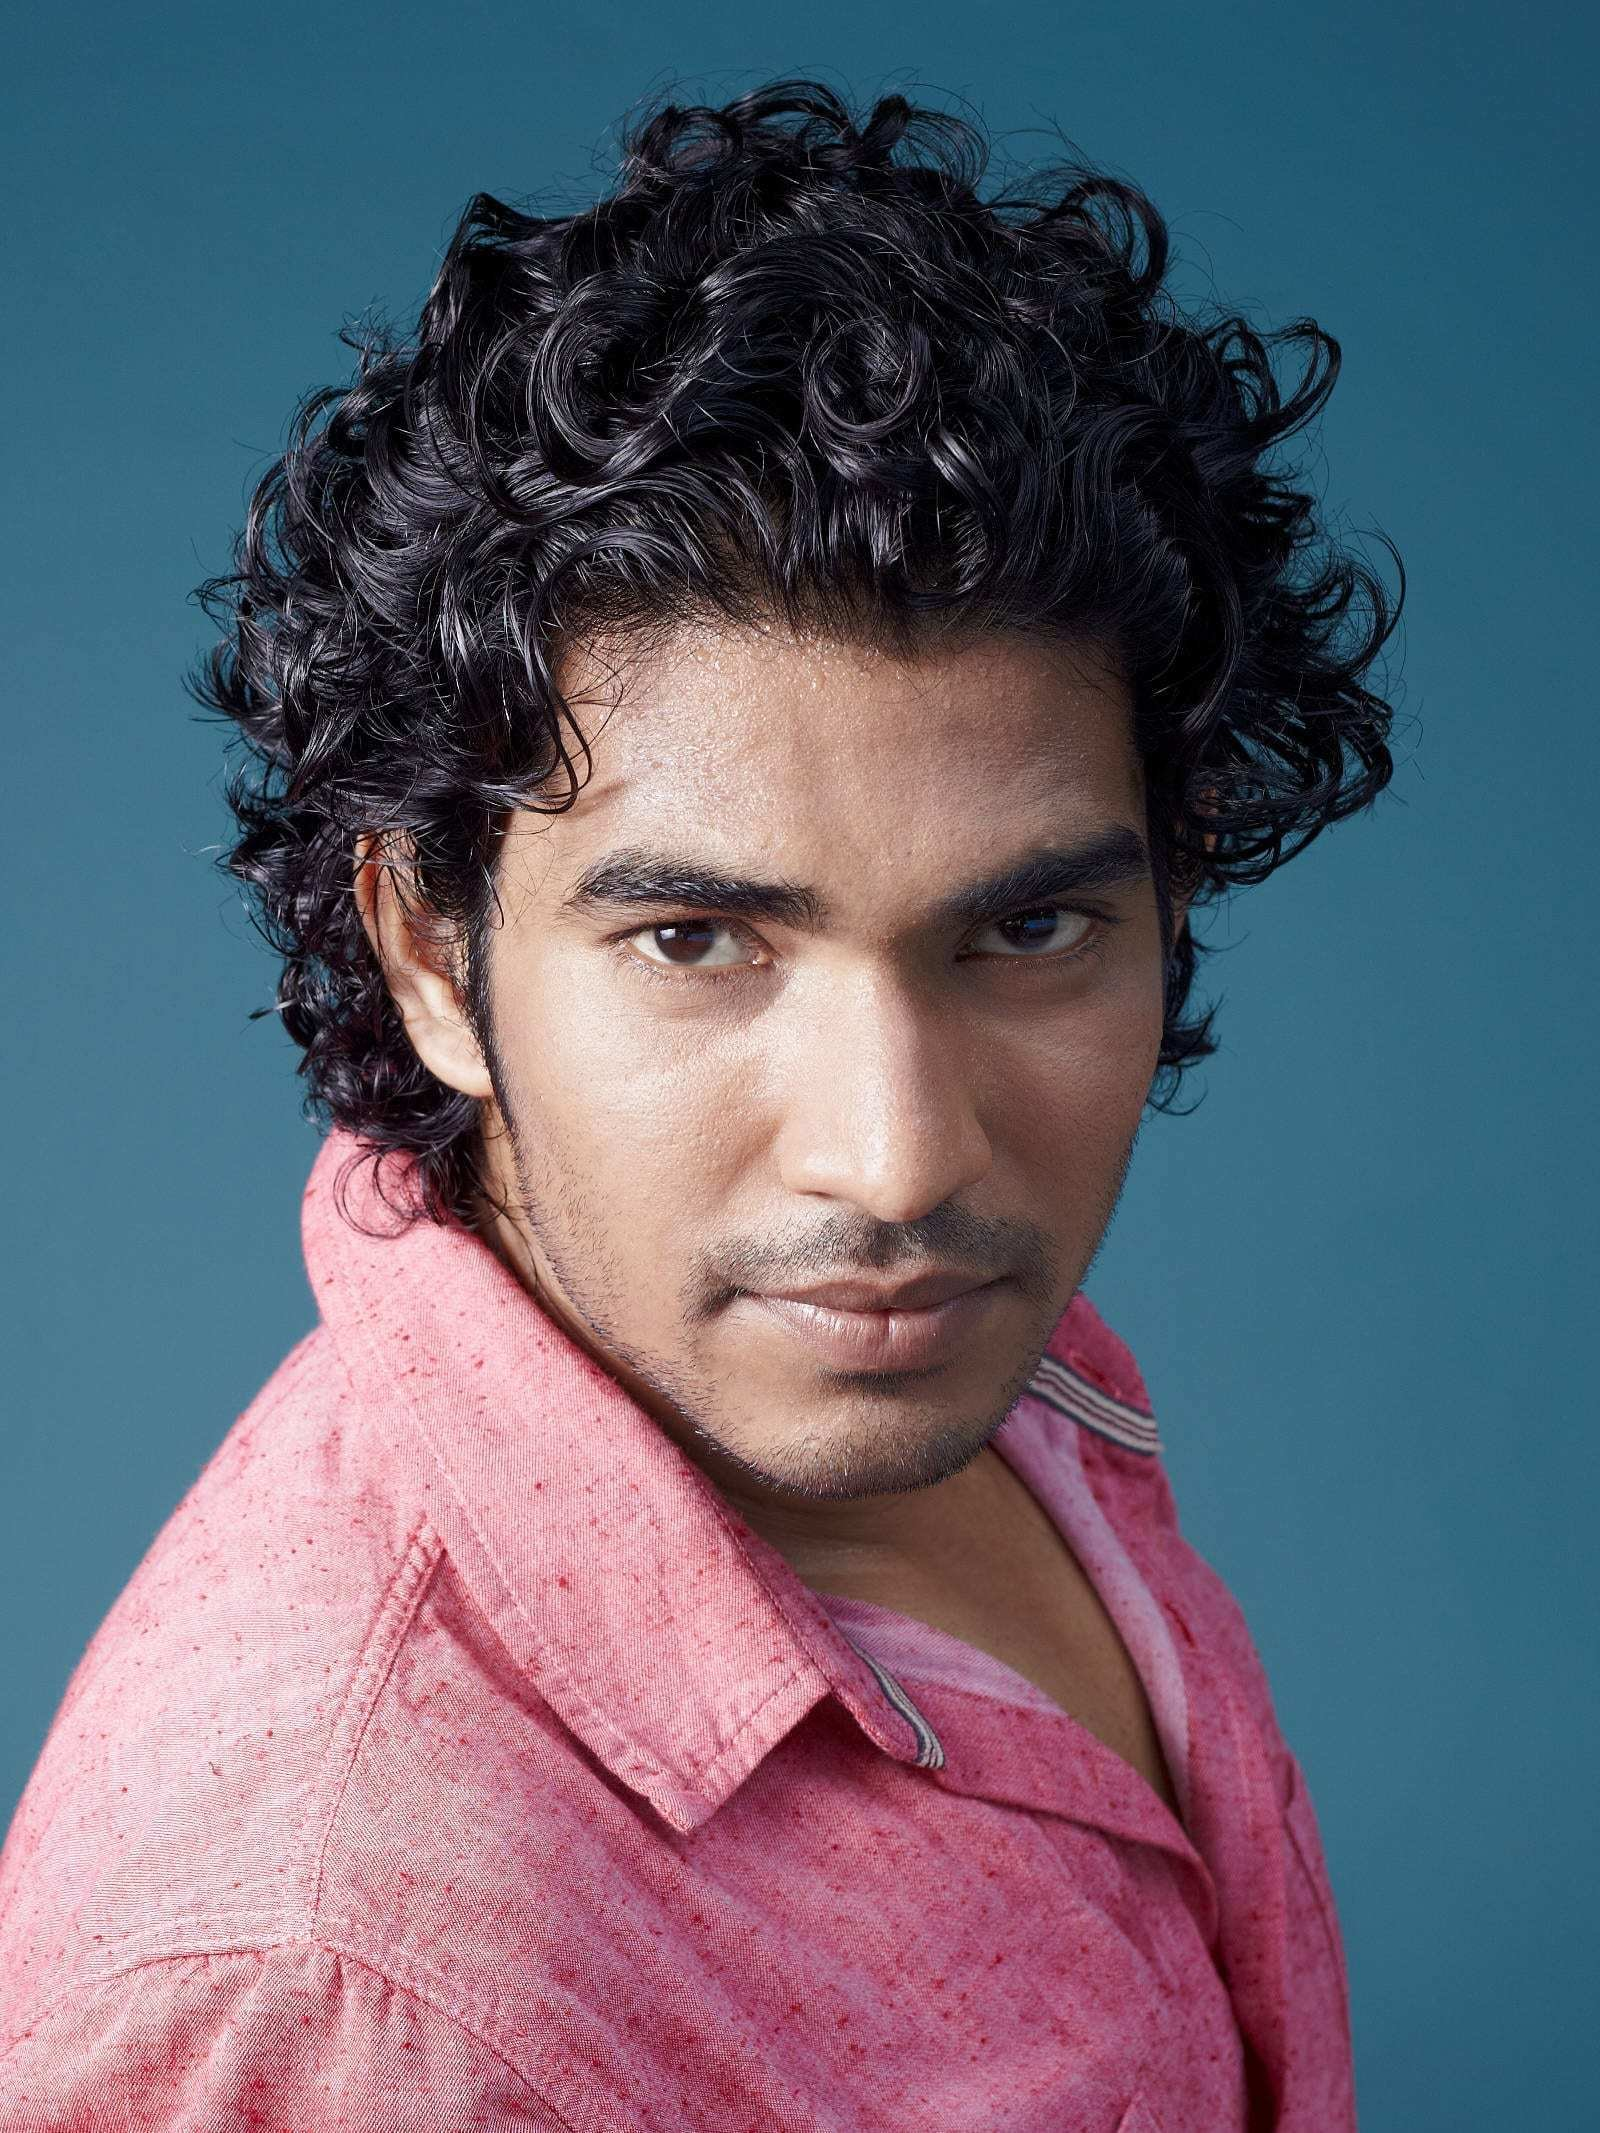 The Best 40 Modern Men S Hairstyles For Curly Hair That Will Change Your Look Pictures